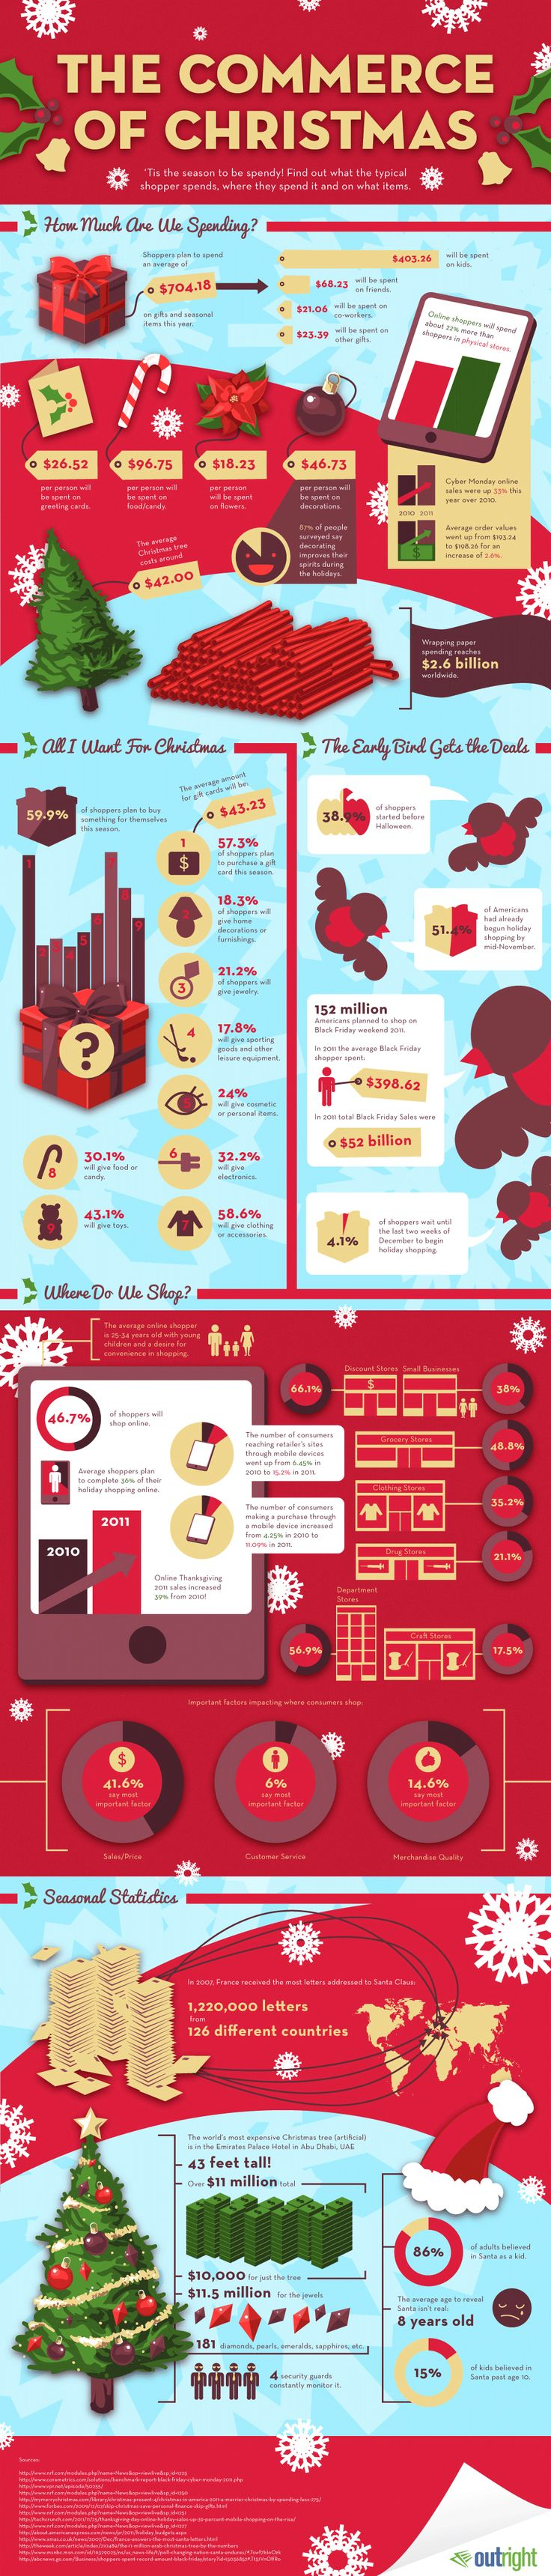 find out what the typical shopper spends where they spend it and on what items christmas statistics on commerce and shopping holiday shopping trends by